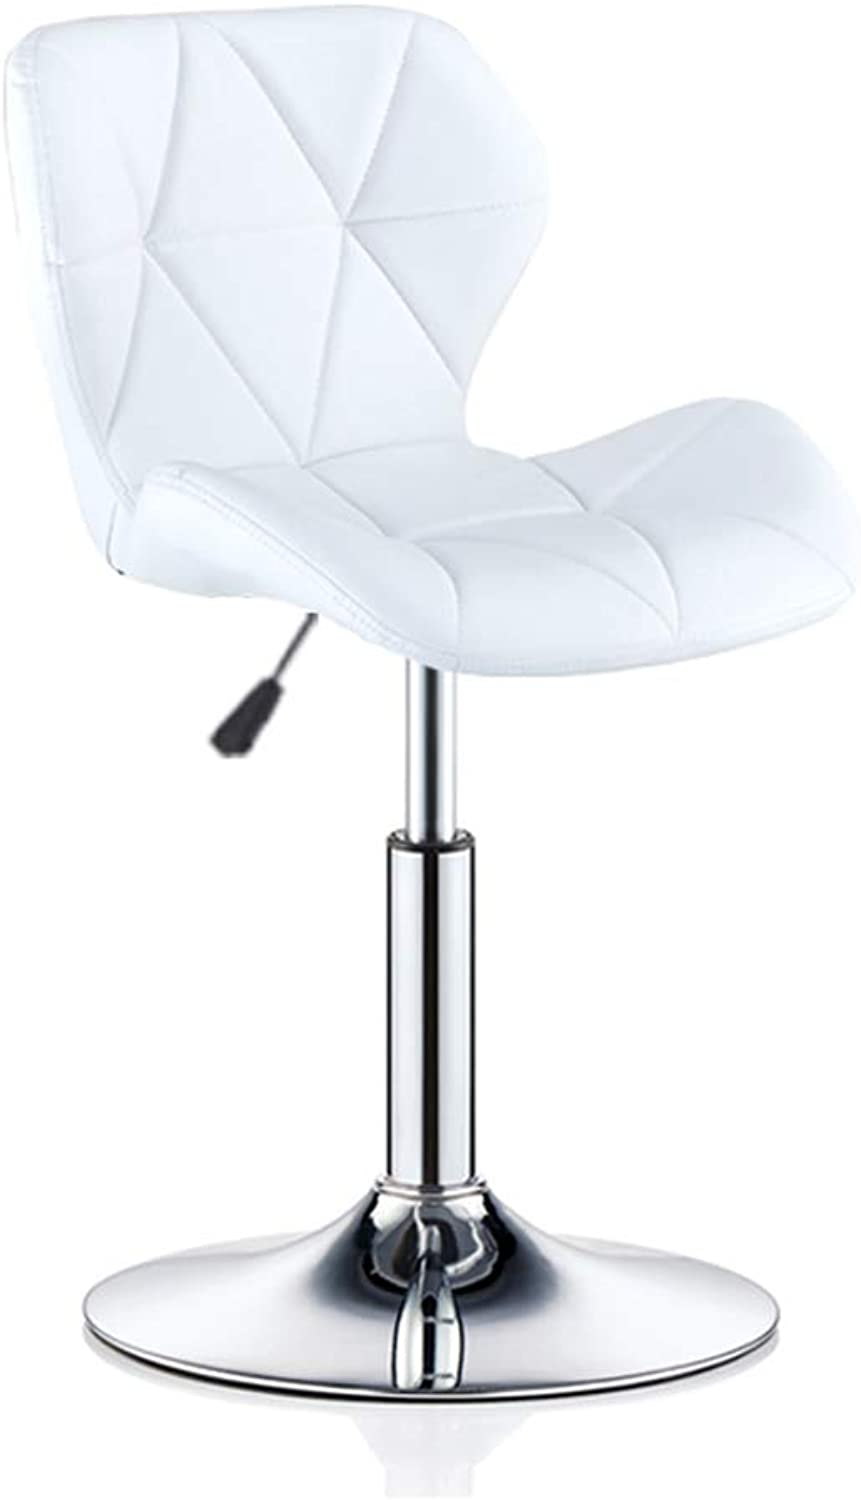 Barstools - Artificial Leather Appearance Bar Chair with Backrest Dining Stool Adjustable Chrome Steel Base 0509A (color   White)